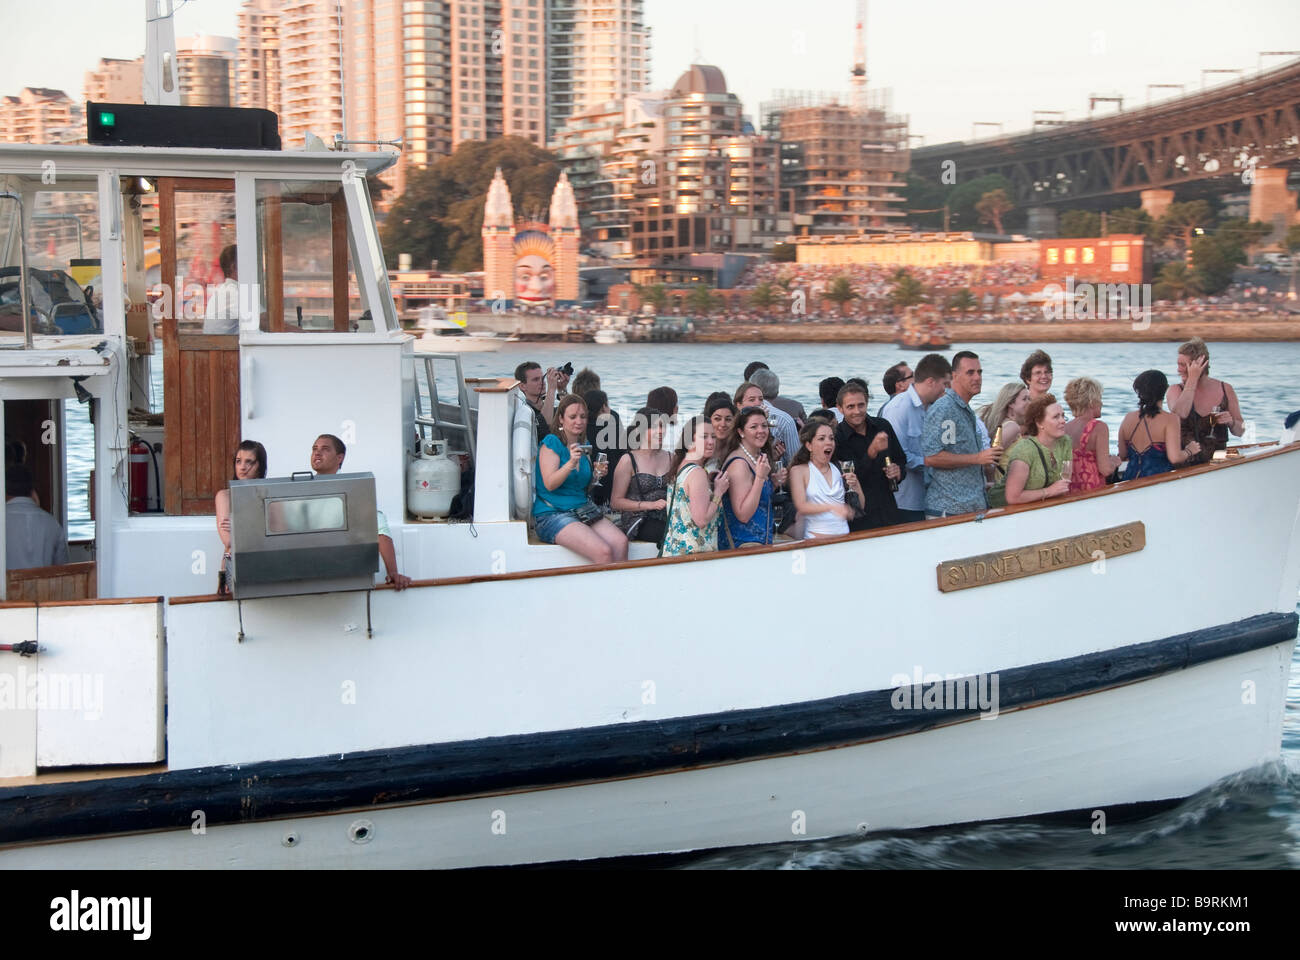 Revellers aboard a tug boat on Sydney Harbour New Year's Eve with Luna Park and Milsons Point in the background - Stock Image